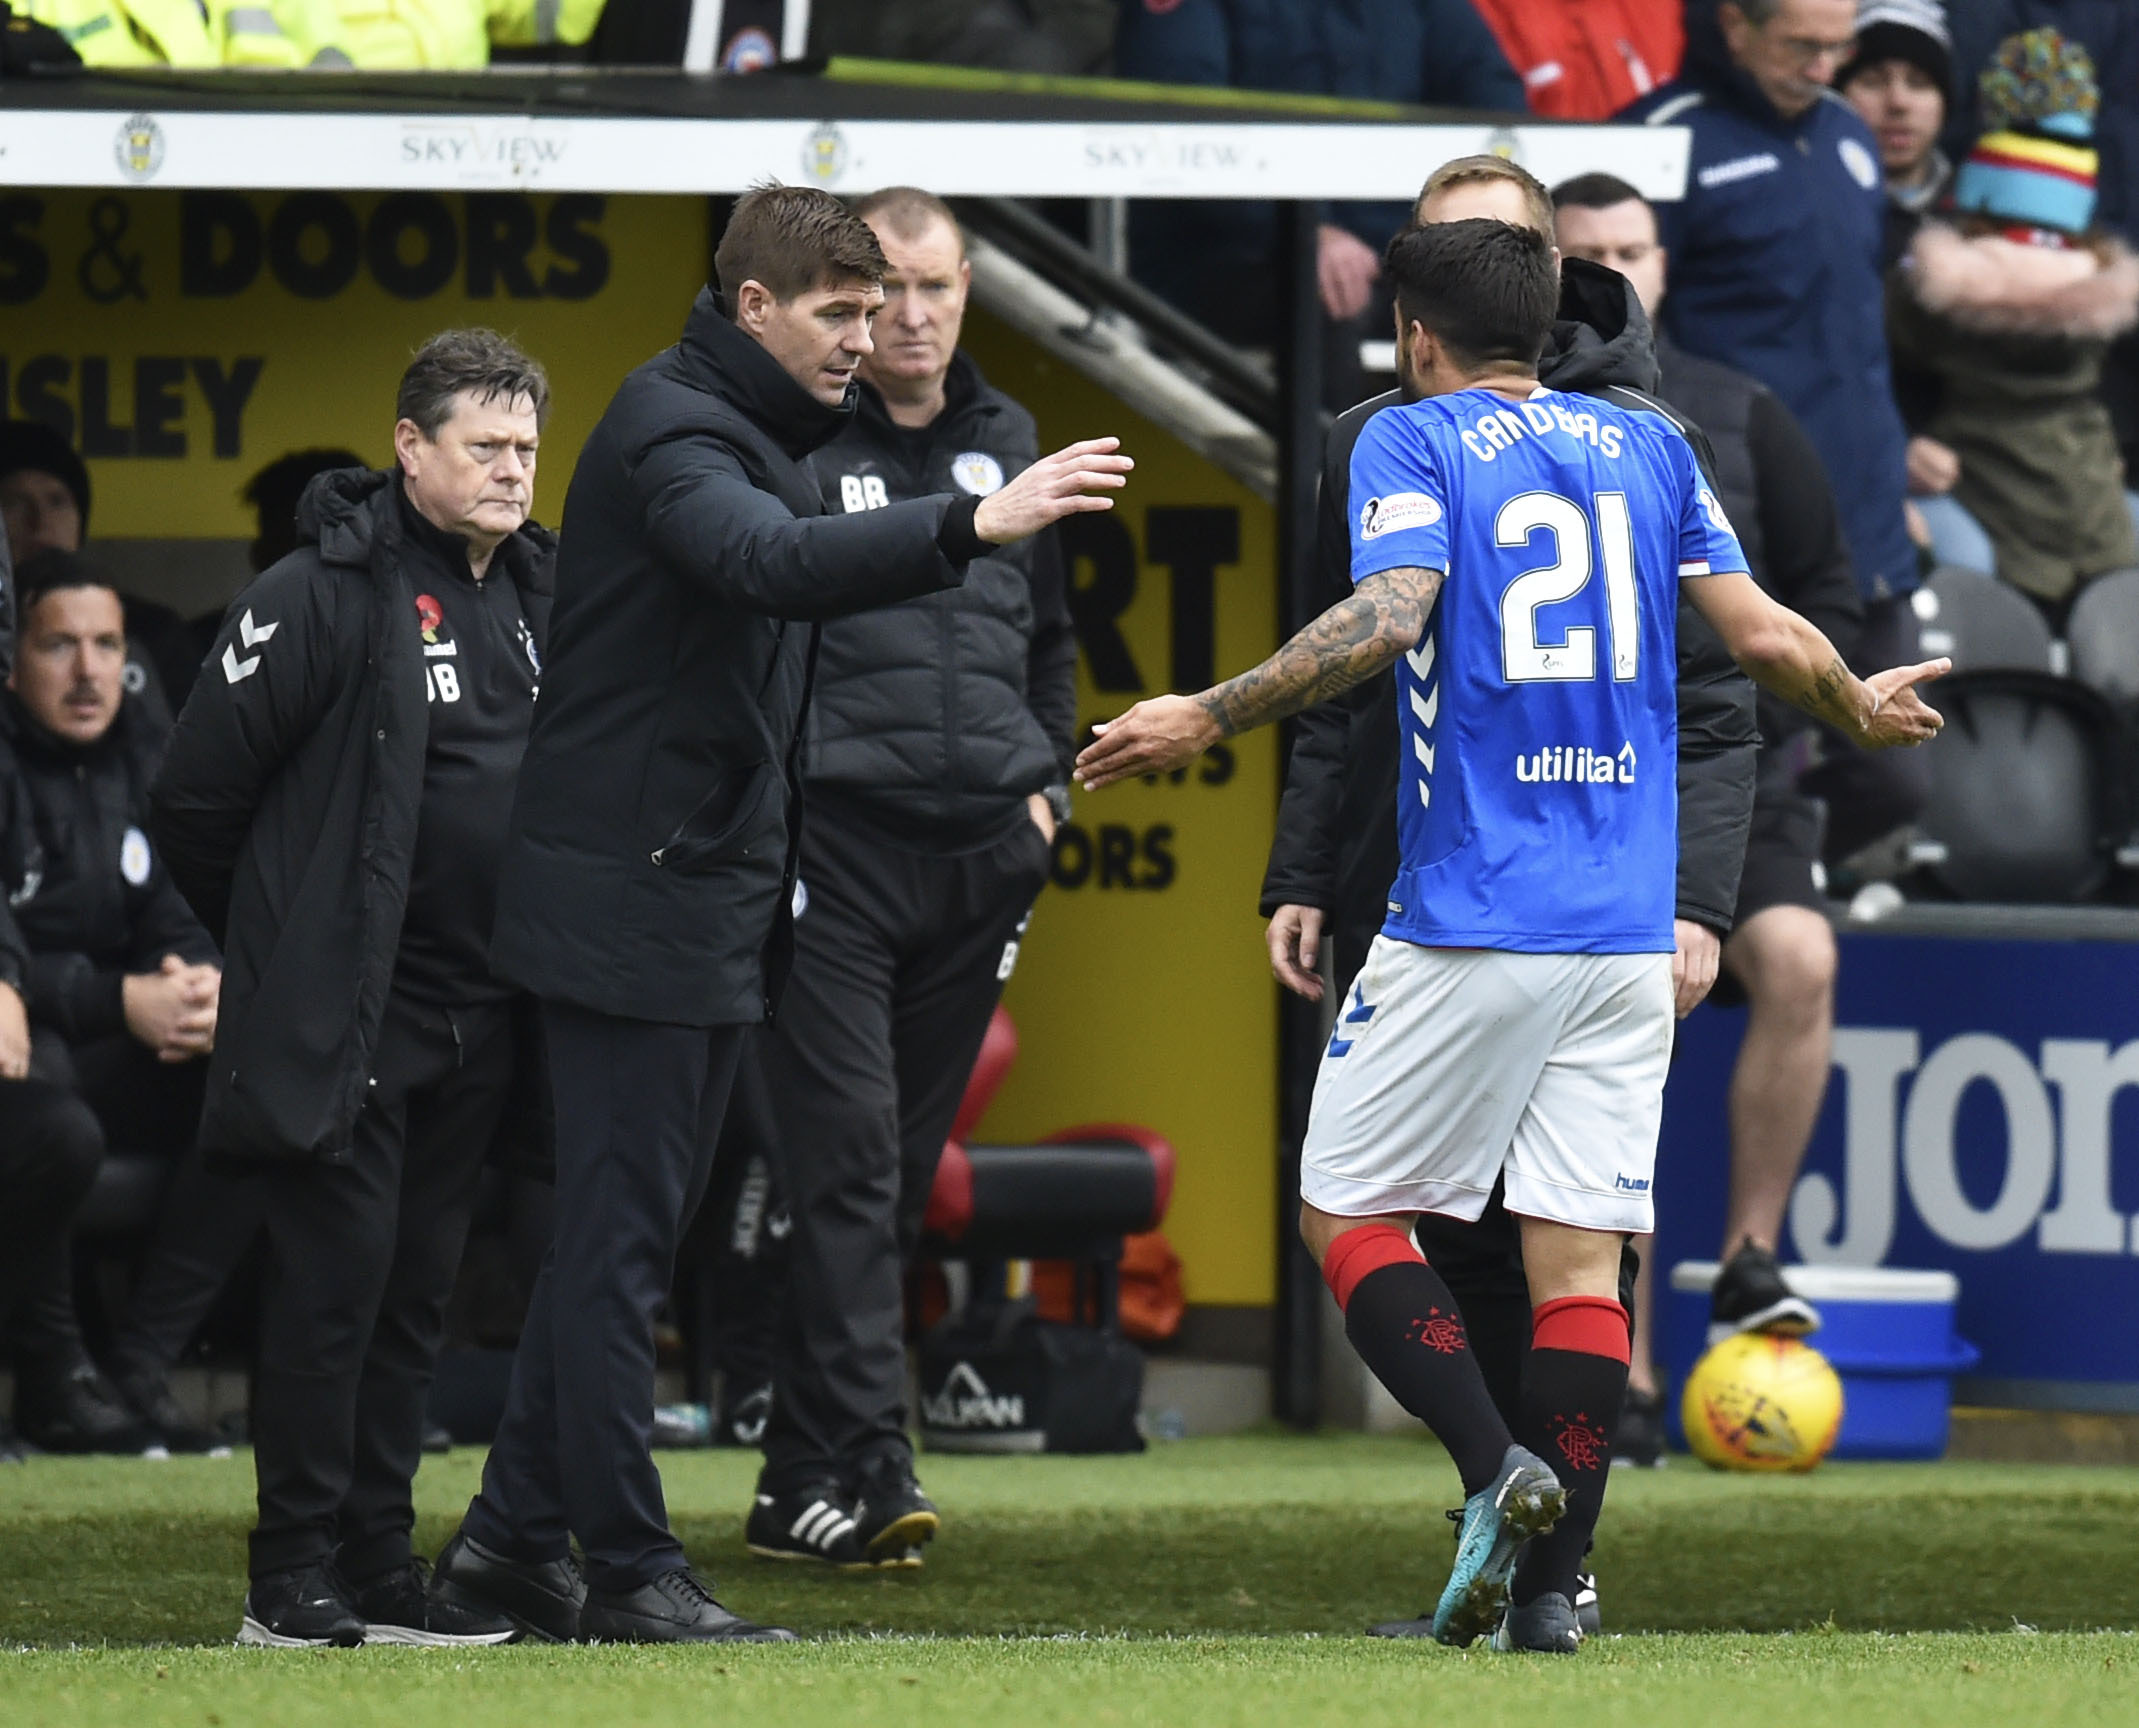 03/11/18 LADBROKES PREMIERSHIP.ST MIRREN v RANGERS (0-2).SIMPLE DIGITAL ARENA - PAISLEY.Rangers manager Steven Gerrard with Daniel Candeias after the latter is shown a red card.